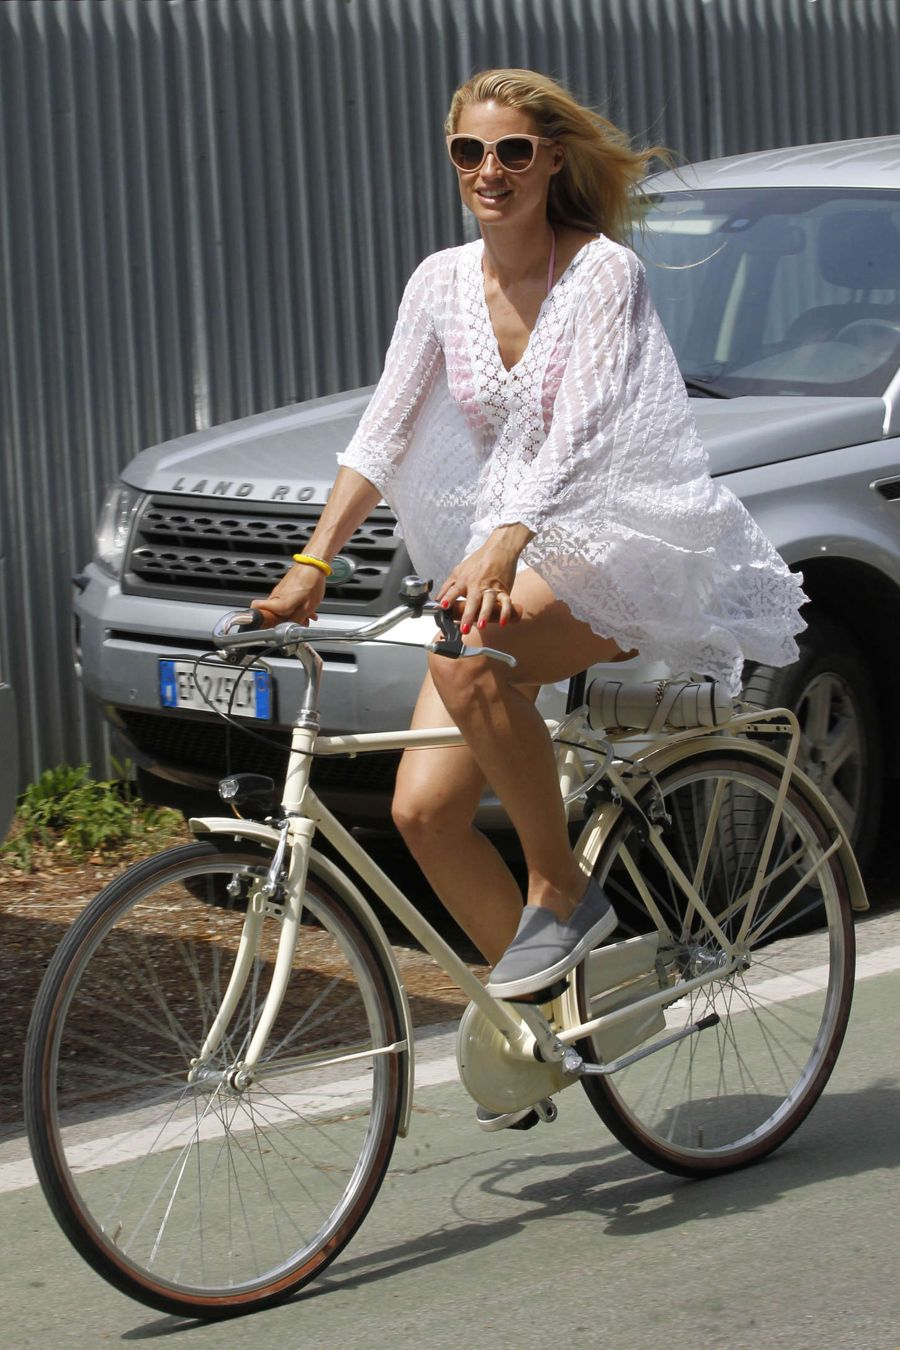 Michelle Hunziker - Riding a Bike in Italy